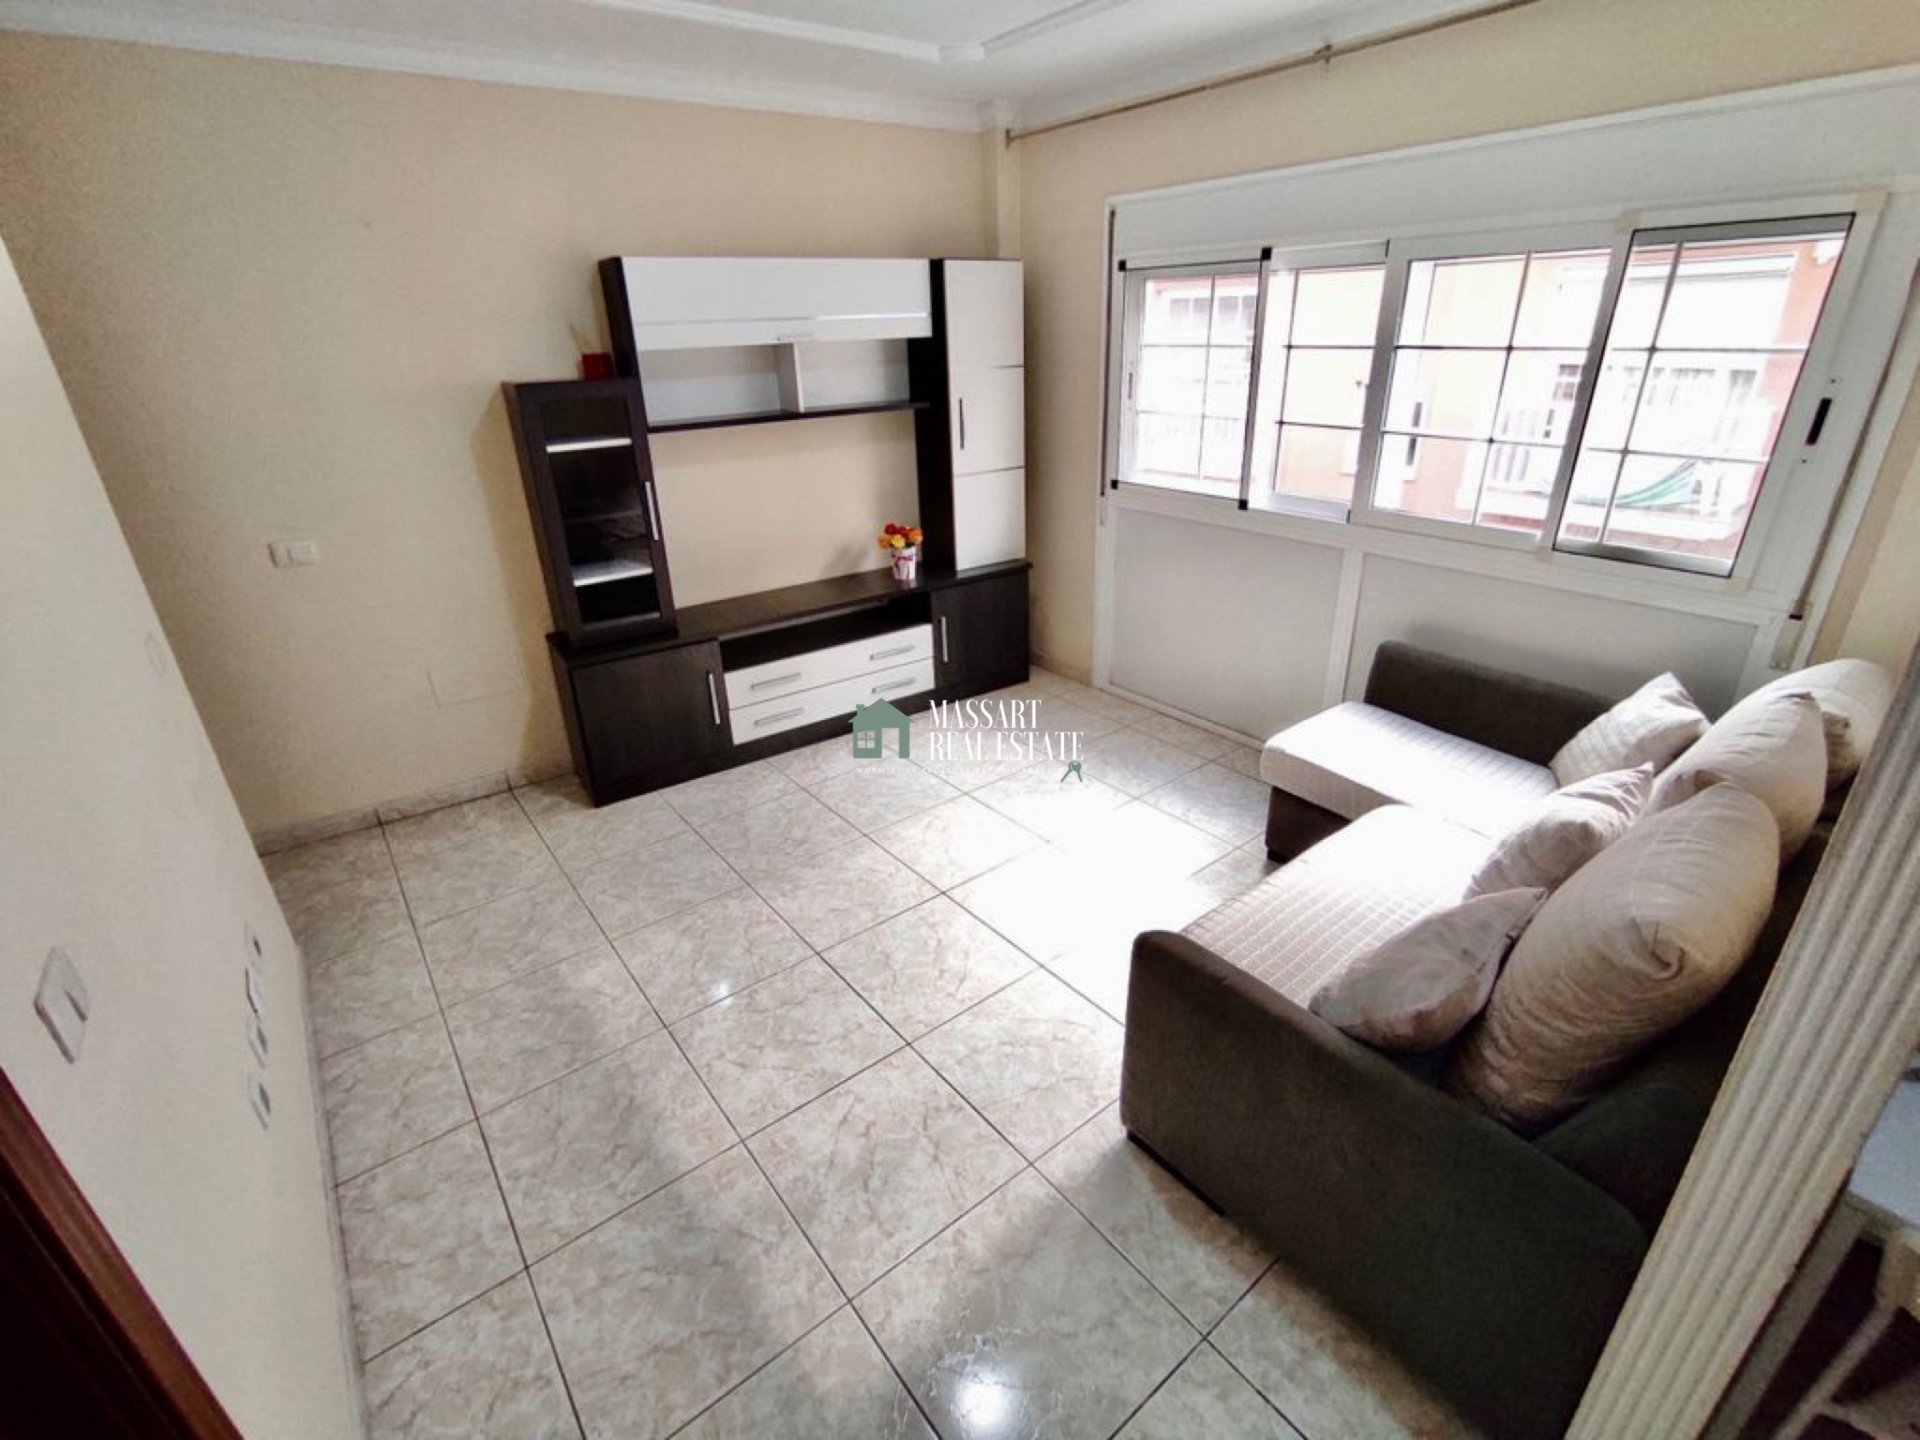 Fully equipped 60 m2 apartment located in the popular town of Guargacho.